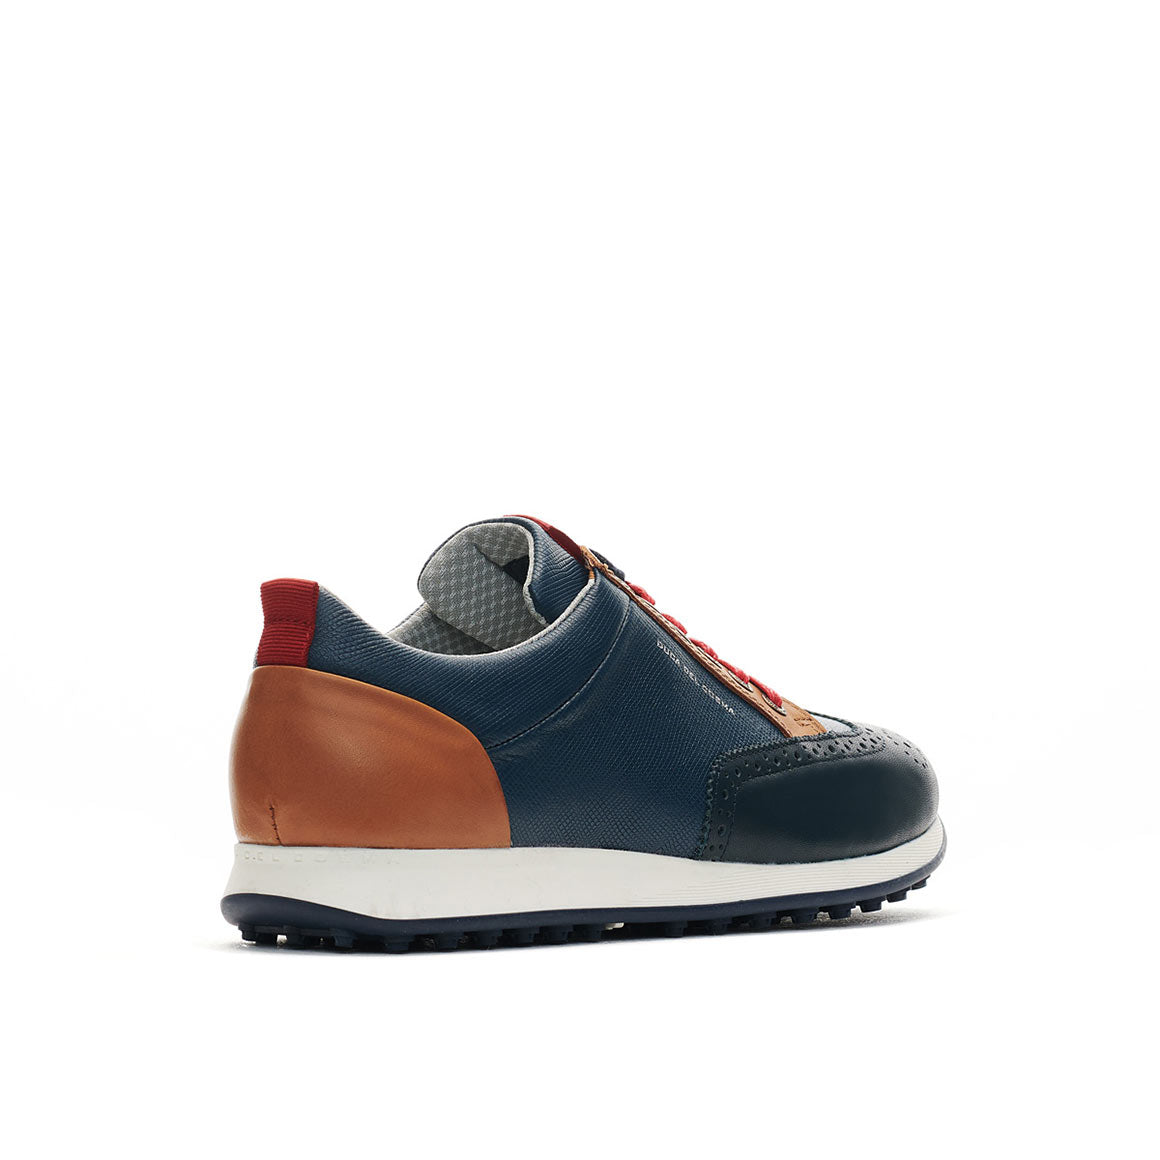 Men's Camelot Navy / Cognac / Red Golf Shoe